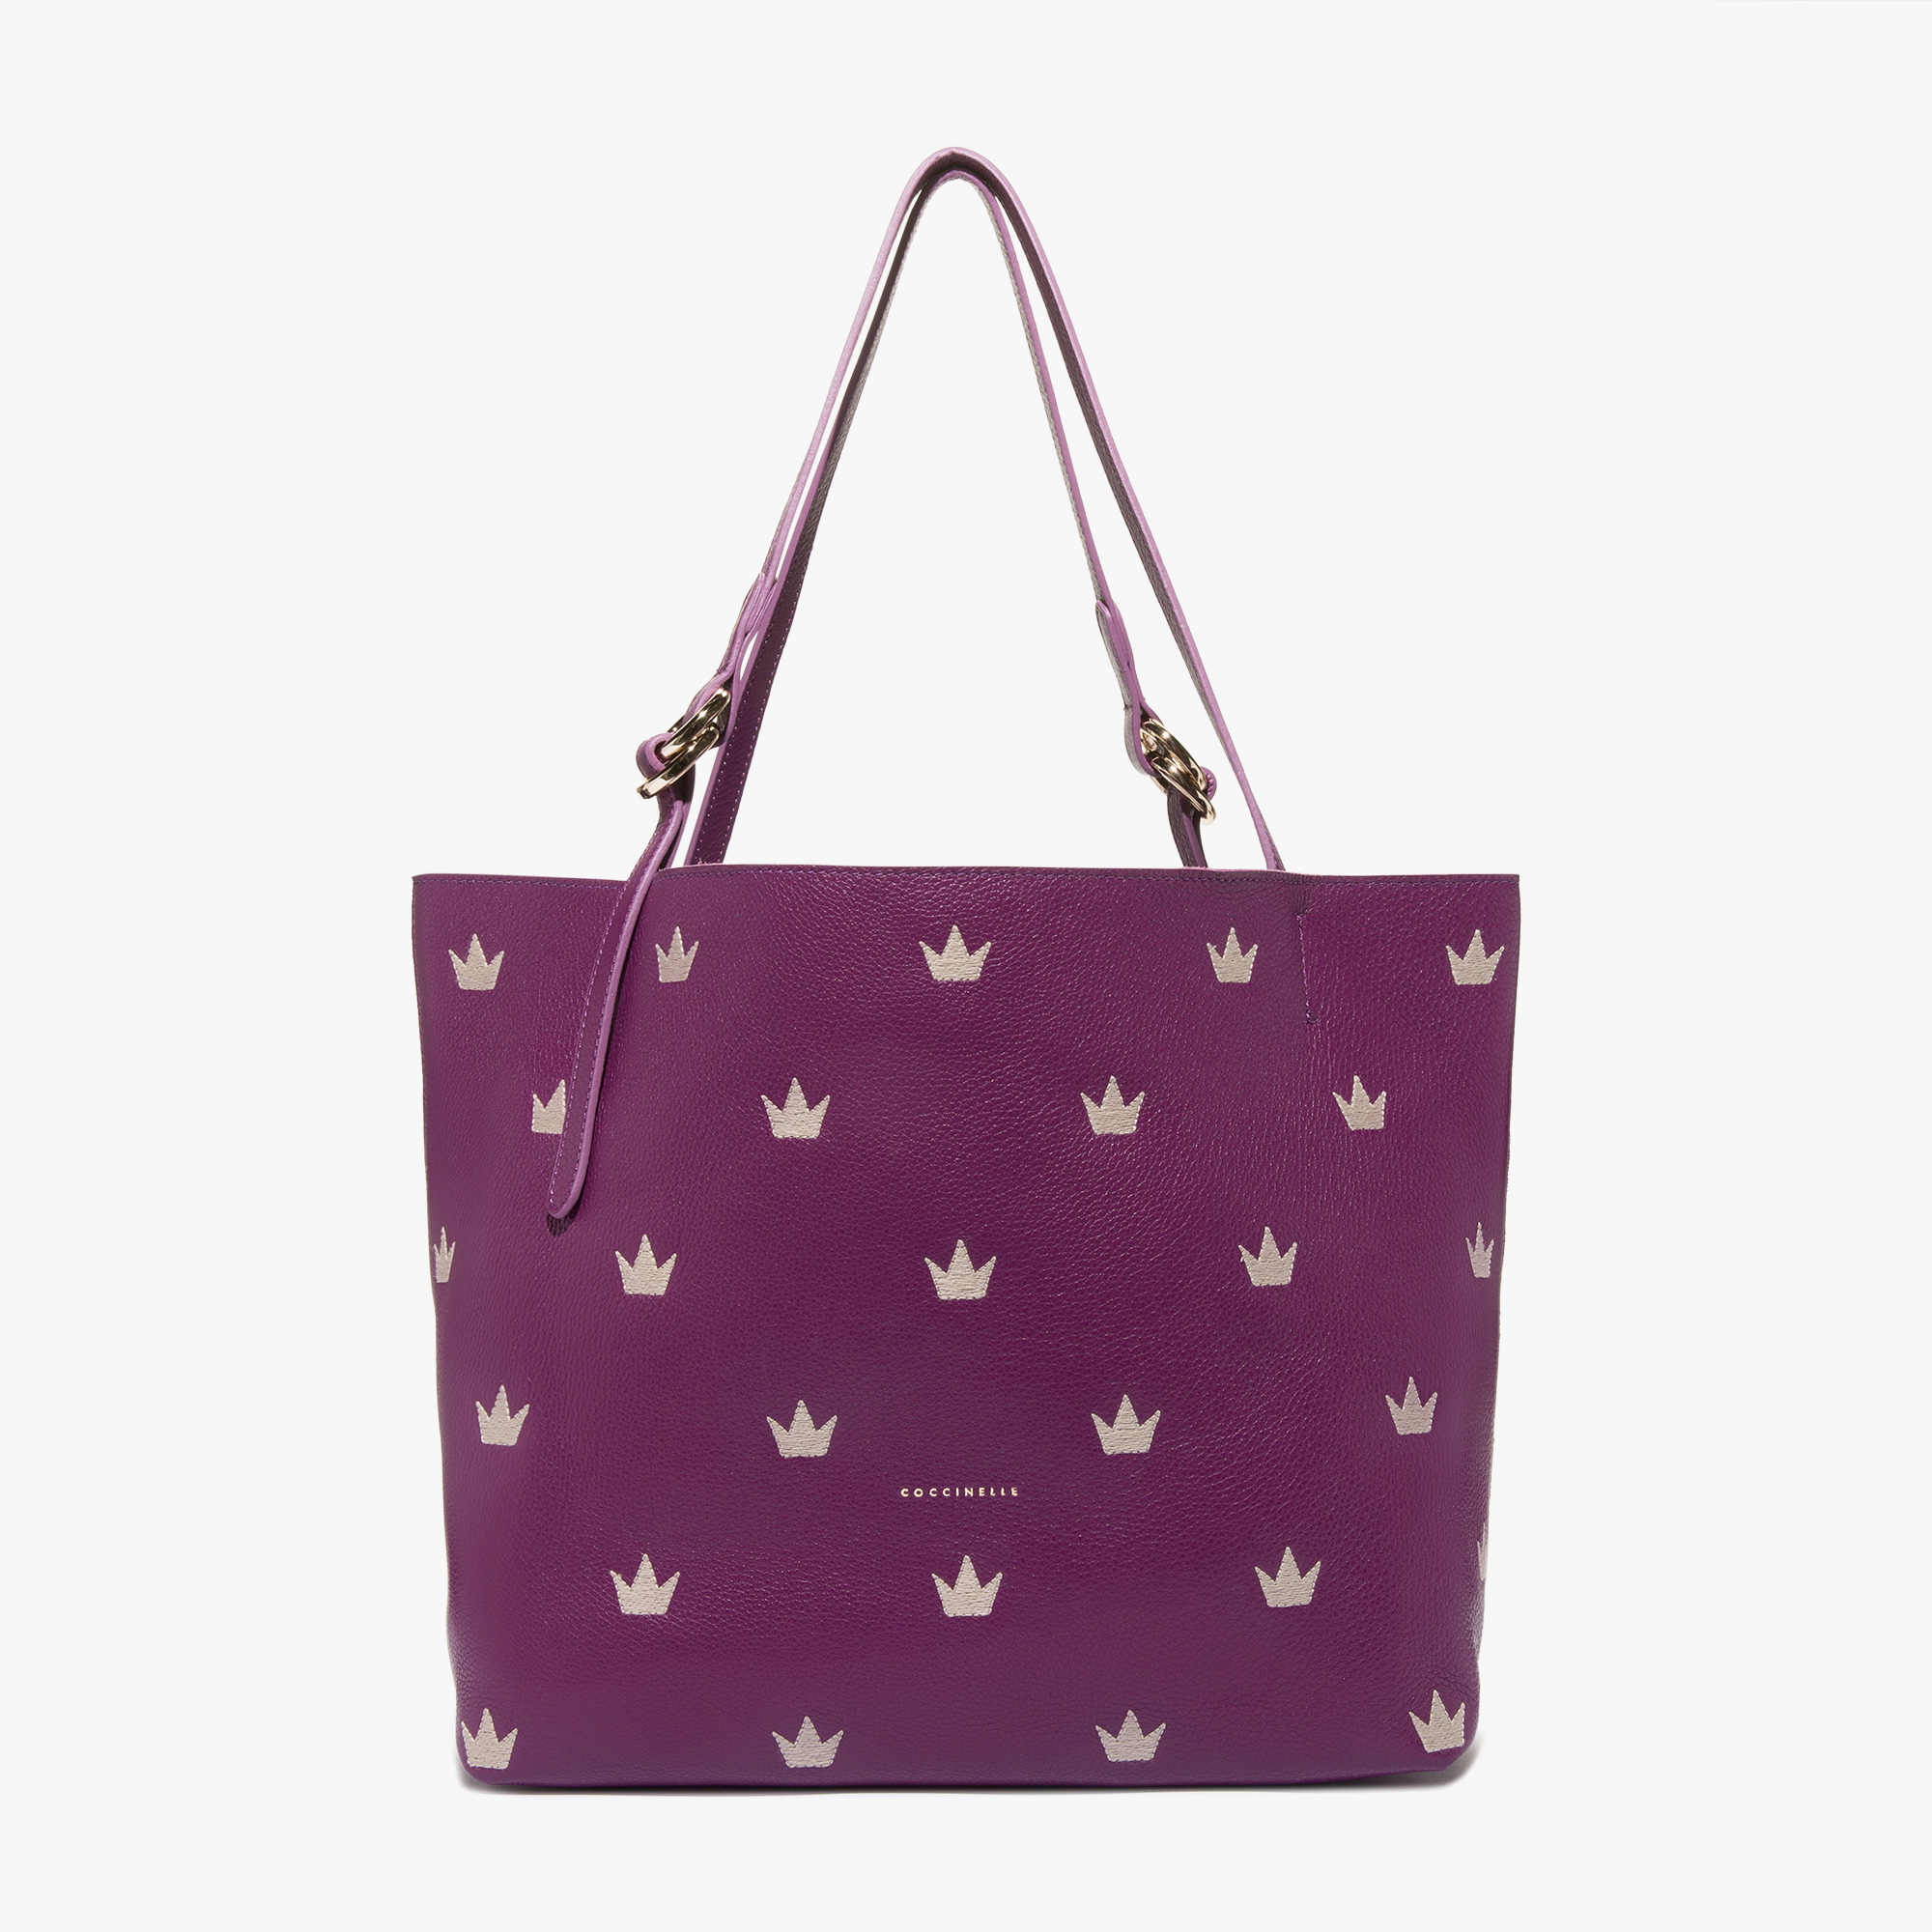 Davon leather shopping tote